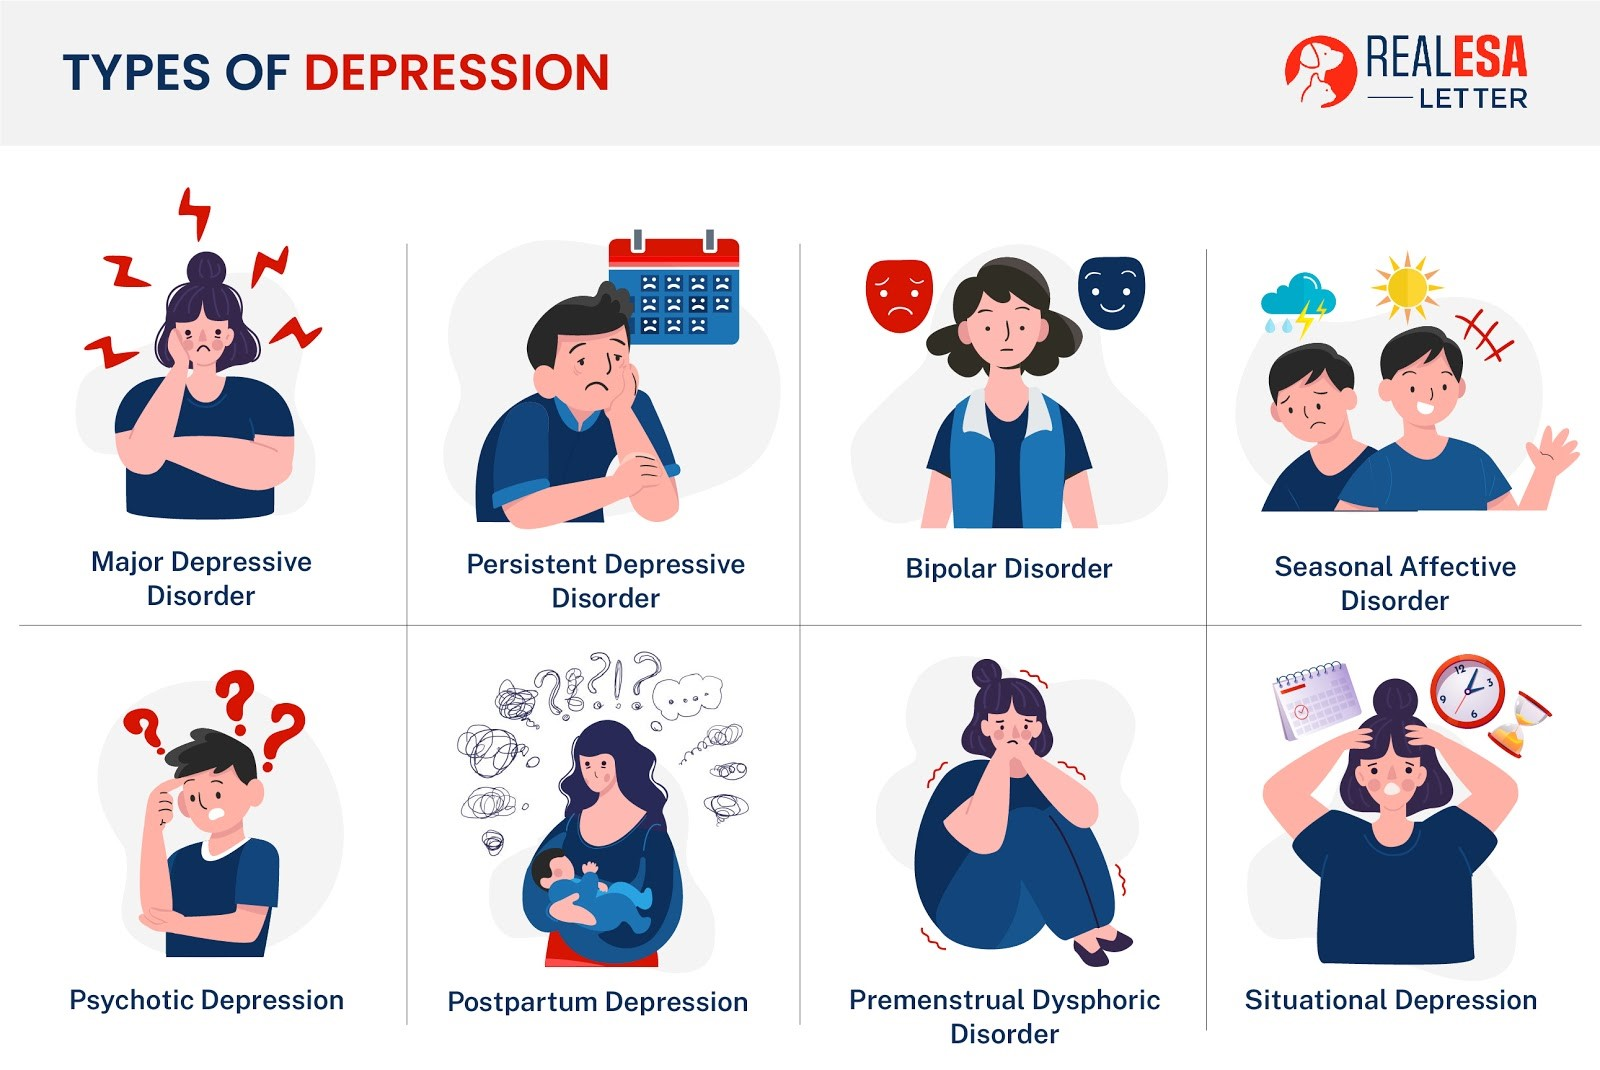 Types of Depression